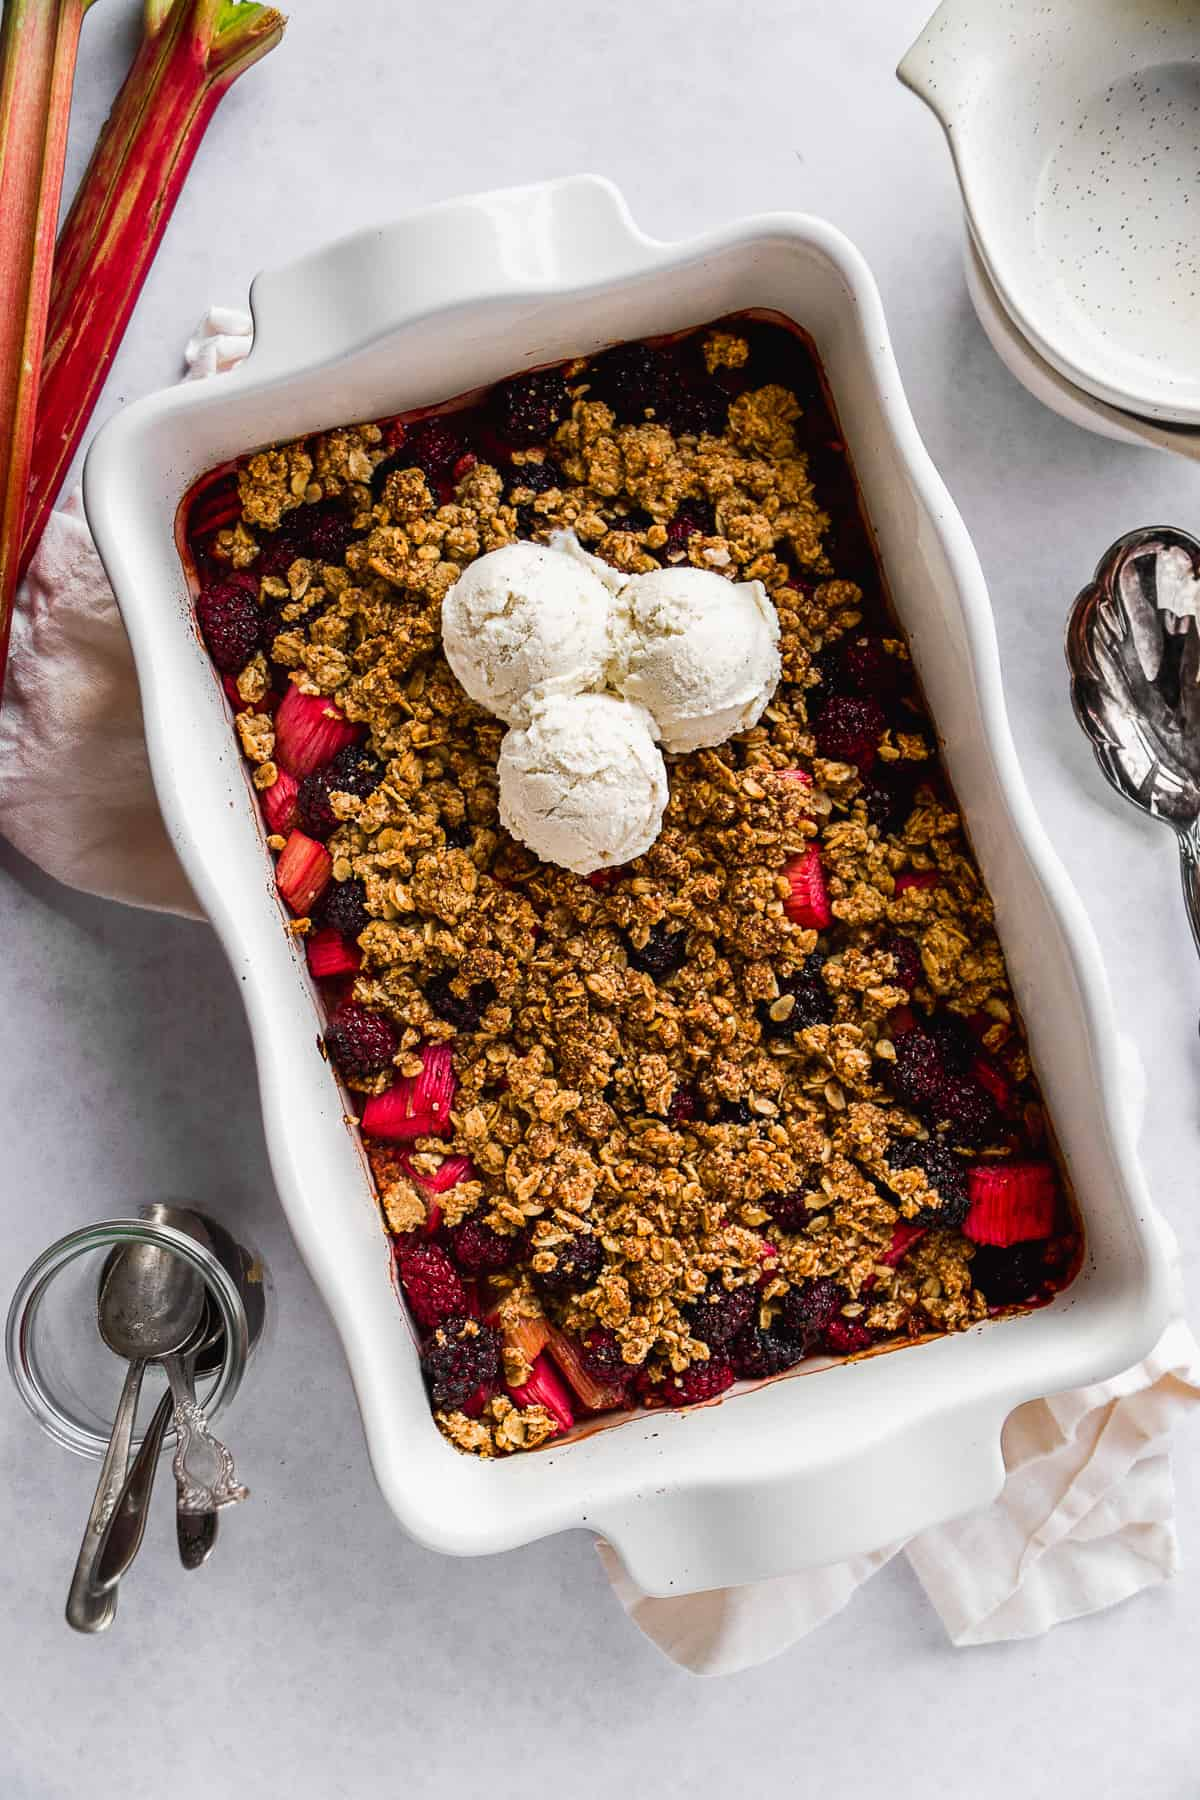 Baked gluten free rhubarb crisp with three scoops of ice cream on top.